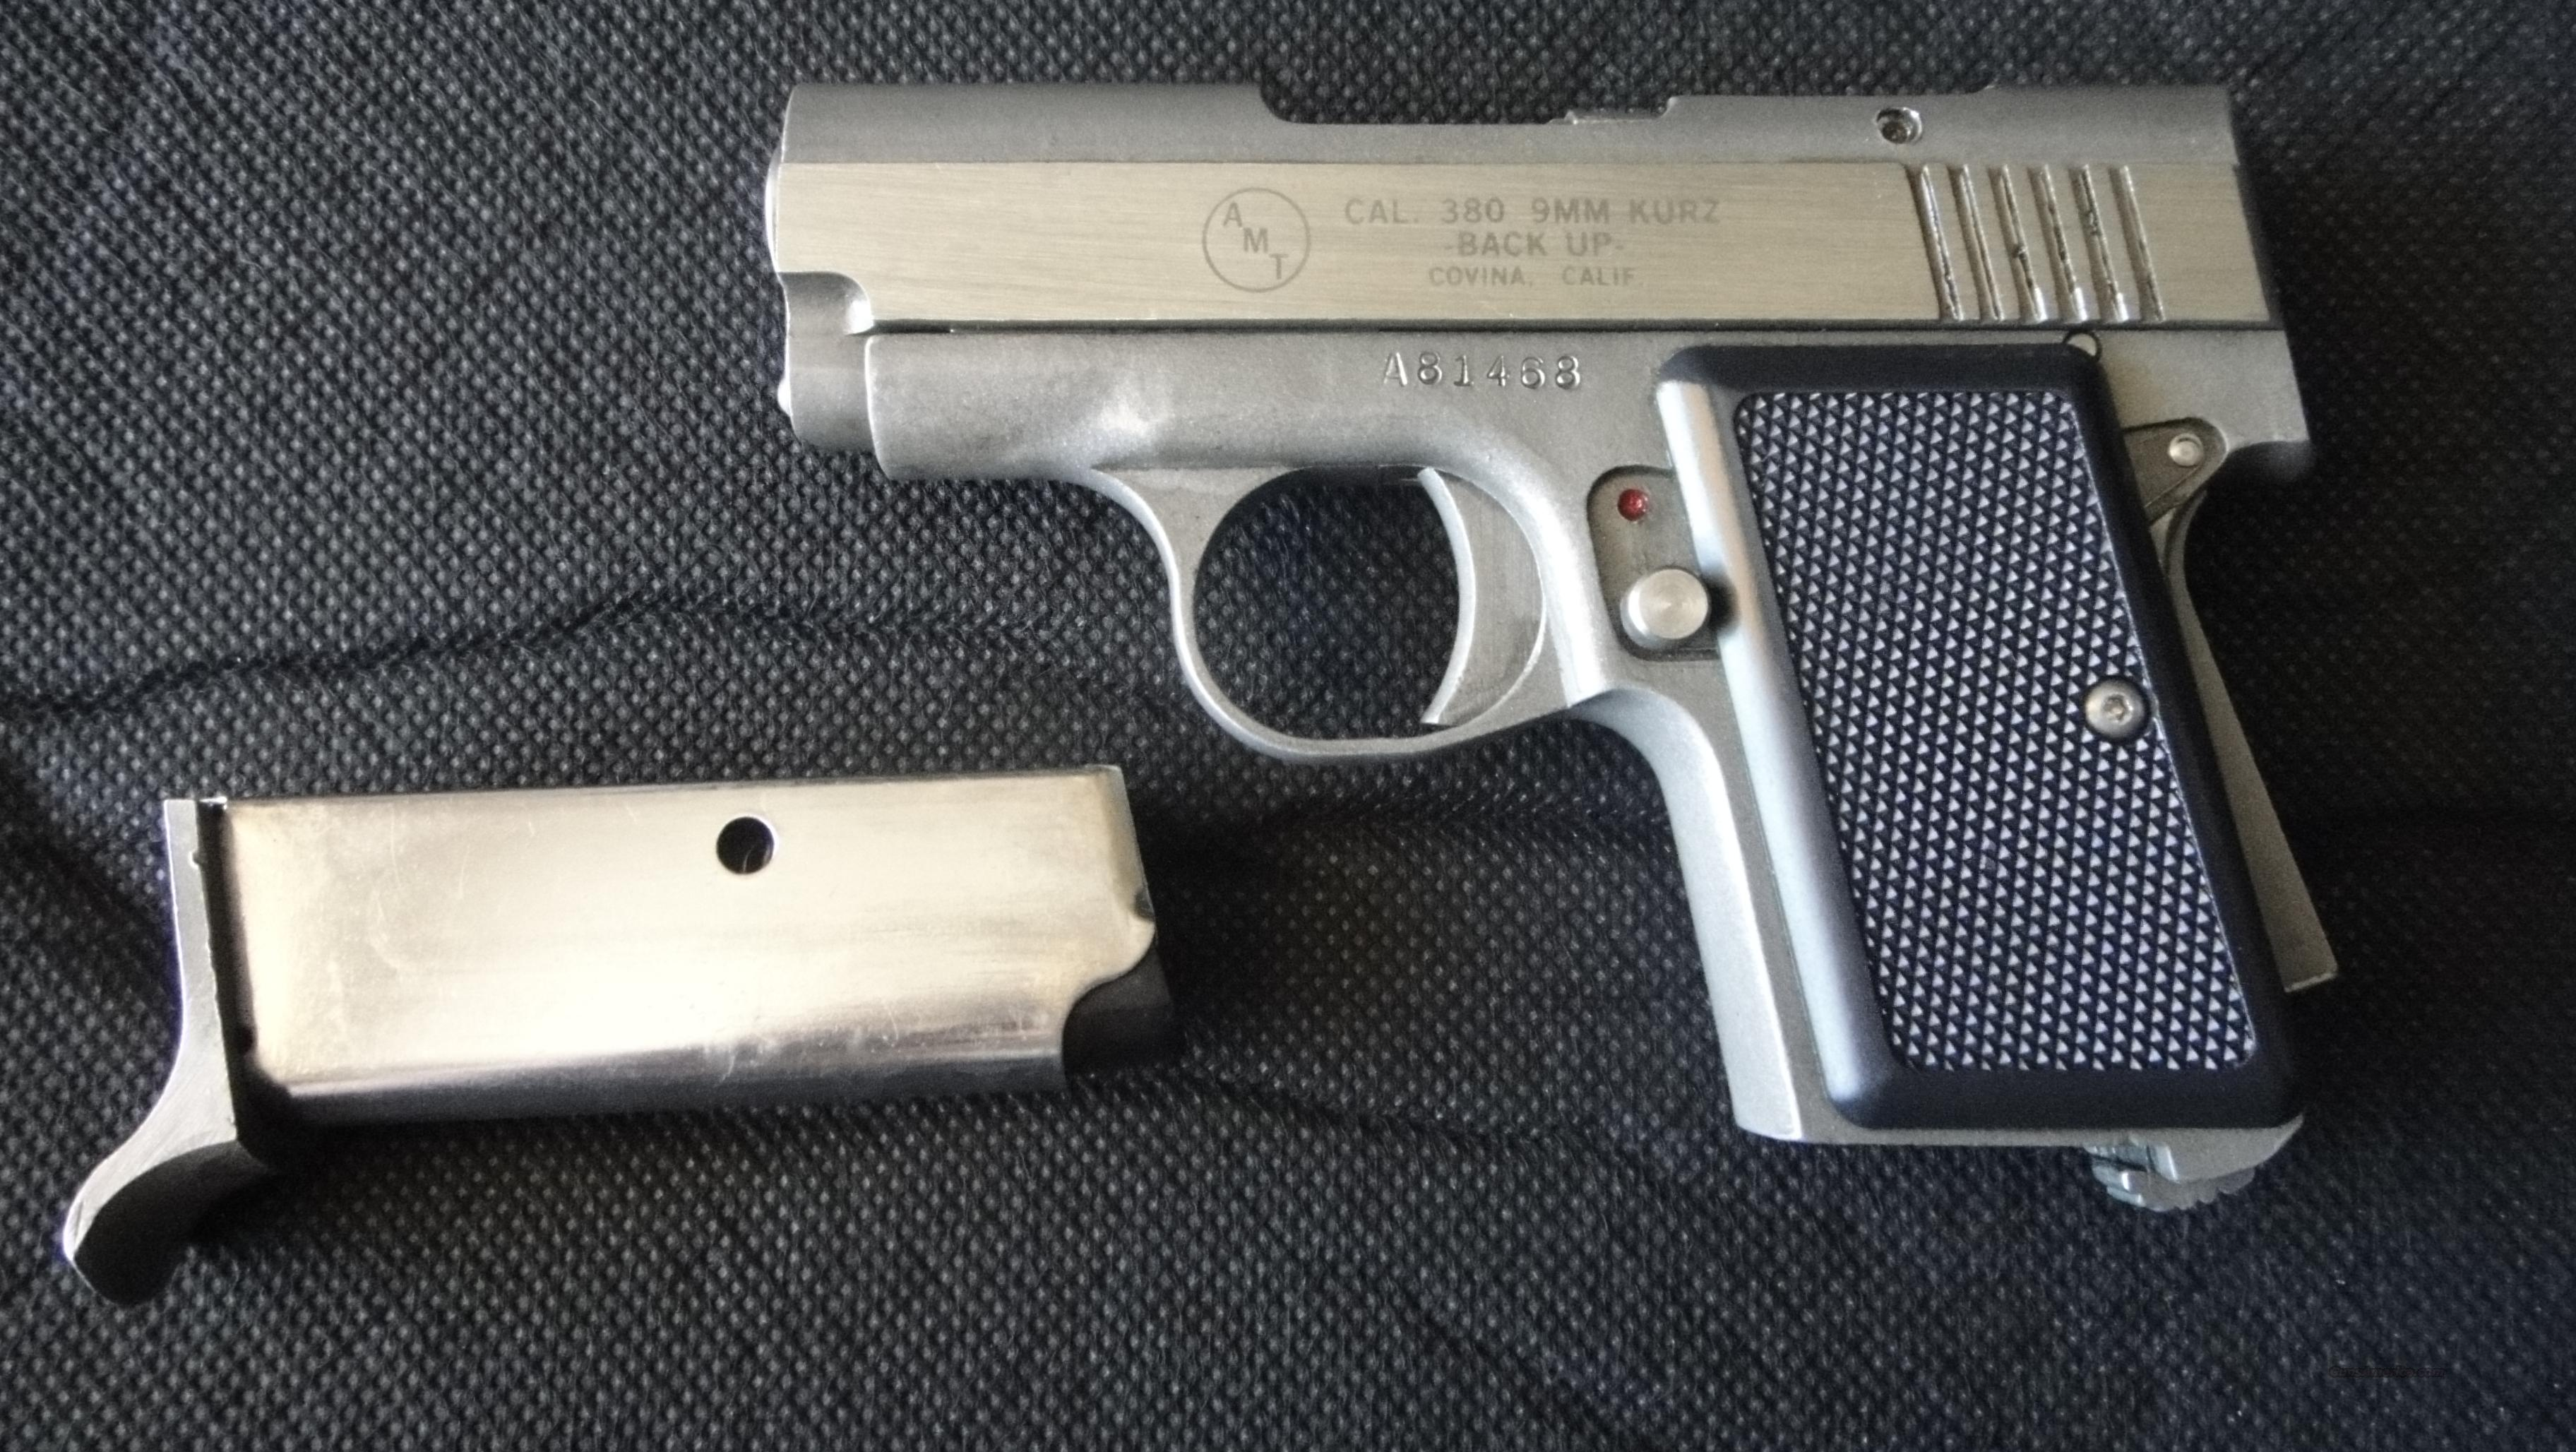 AMT Backup .380 ACP - Cheap!   Guns > Pistols > AMT Pistols > 1911 copies